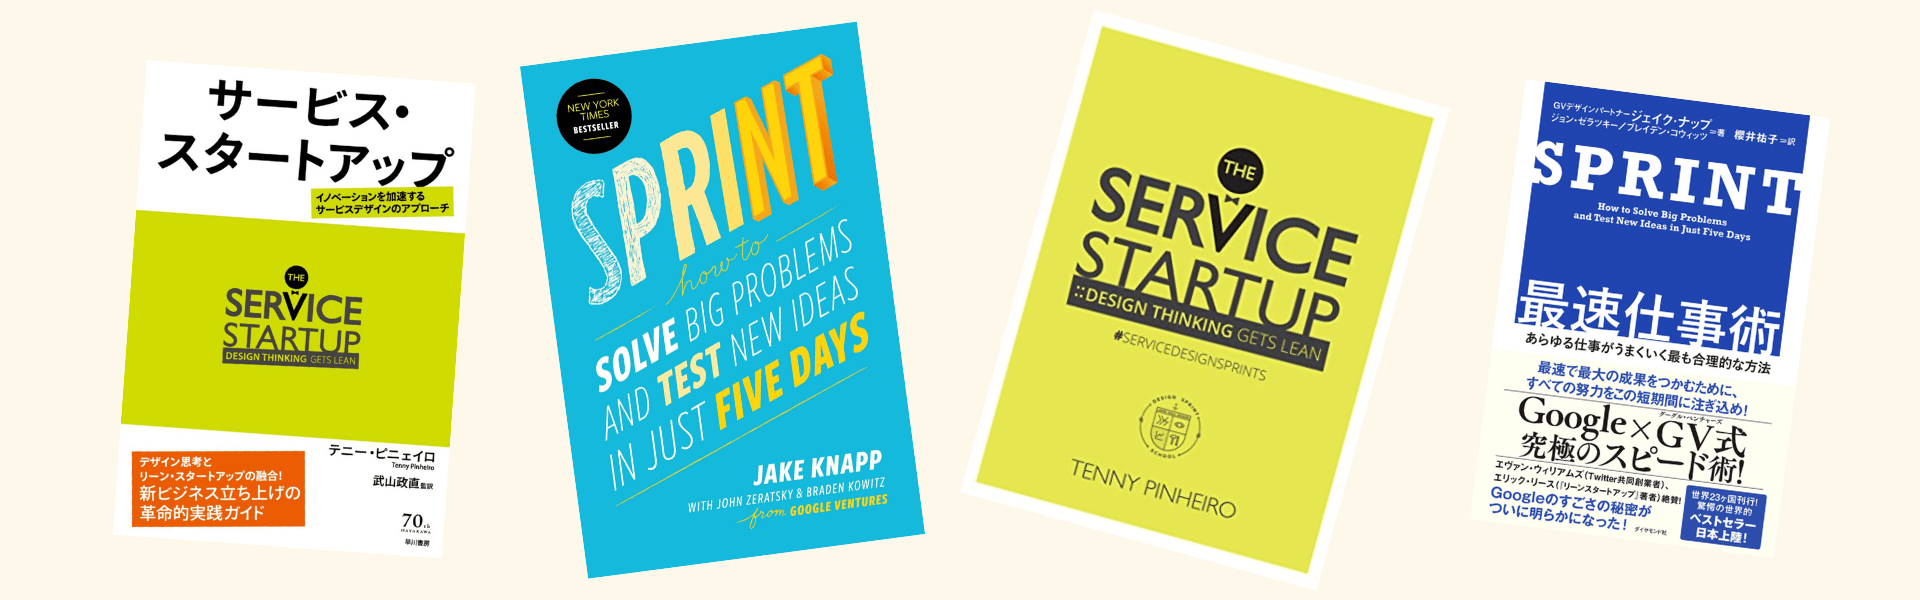 「Service Design Sprints vs. Product (GV) Design Sprints — What's the Difference?」のアイキャッチ画像